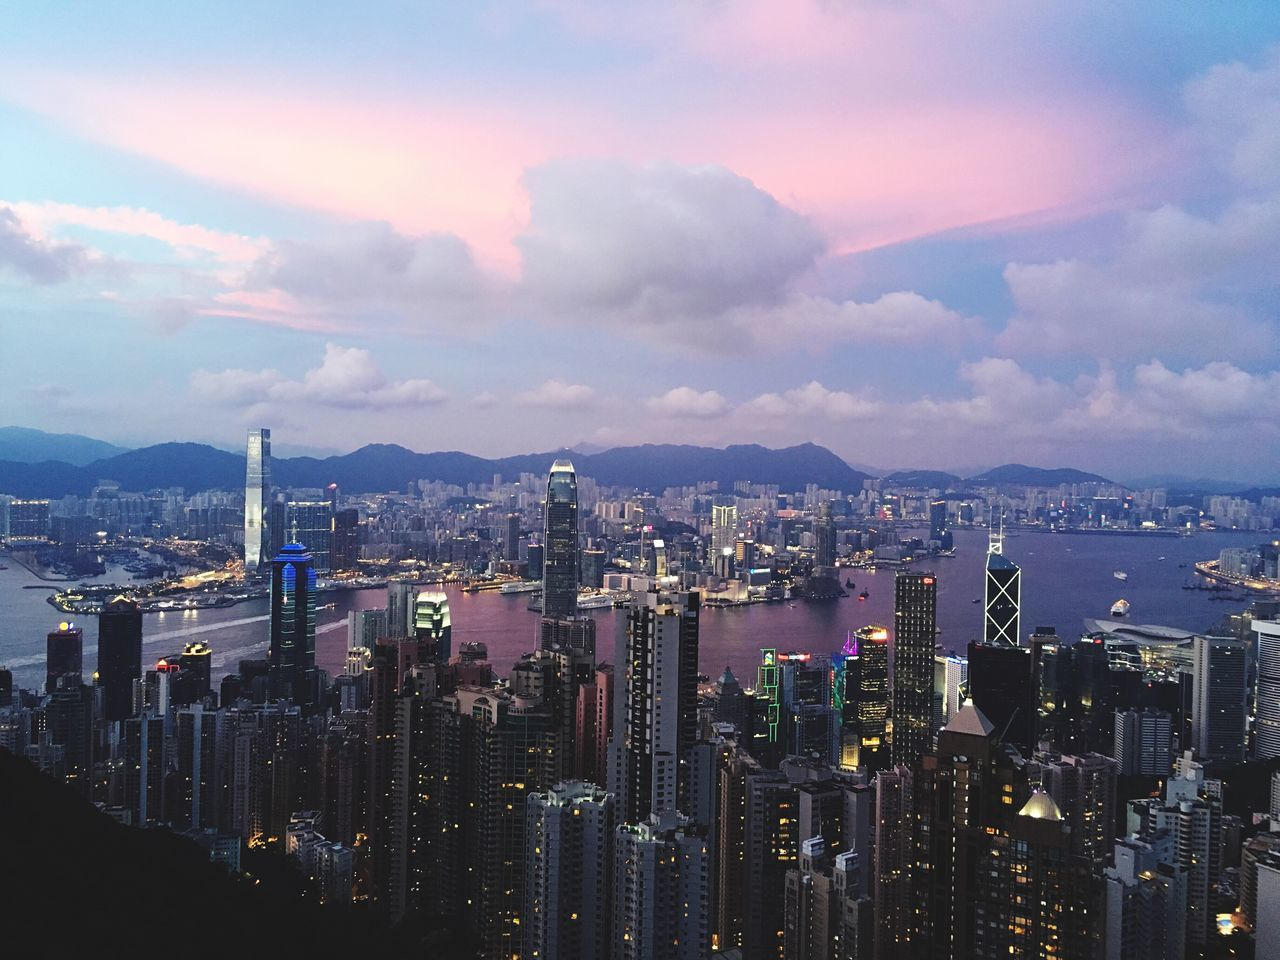 Hong Kong, city view at Twilight from The Peak HongKong City View Skyline Lights china Twilight sunset evening night